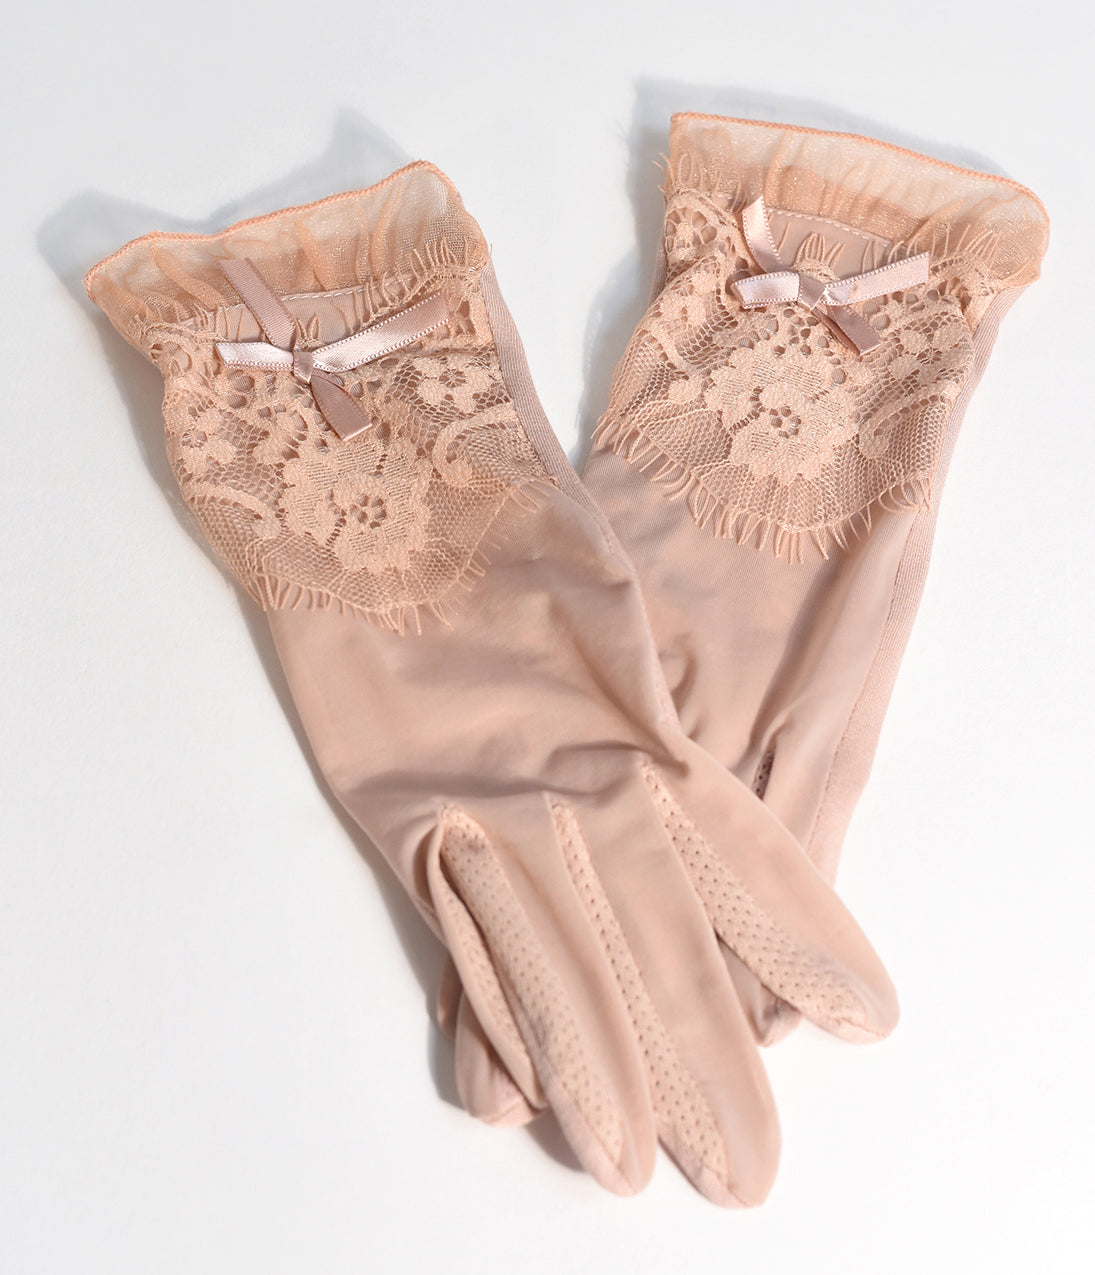 Vintage Style Gloves- Long, Wrist, Evening, Day, Leather, Lace Dusty Pink Vintage Lace Sheer Wrist Gloves $18.00 AT vintagedancer.com